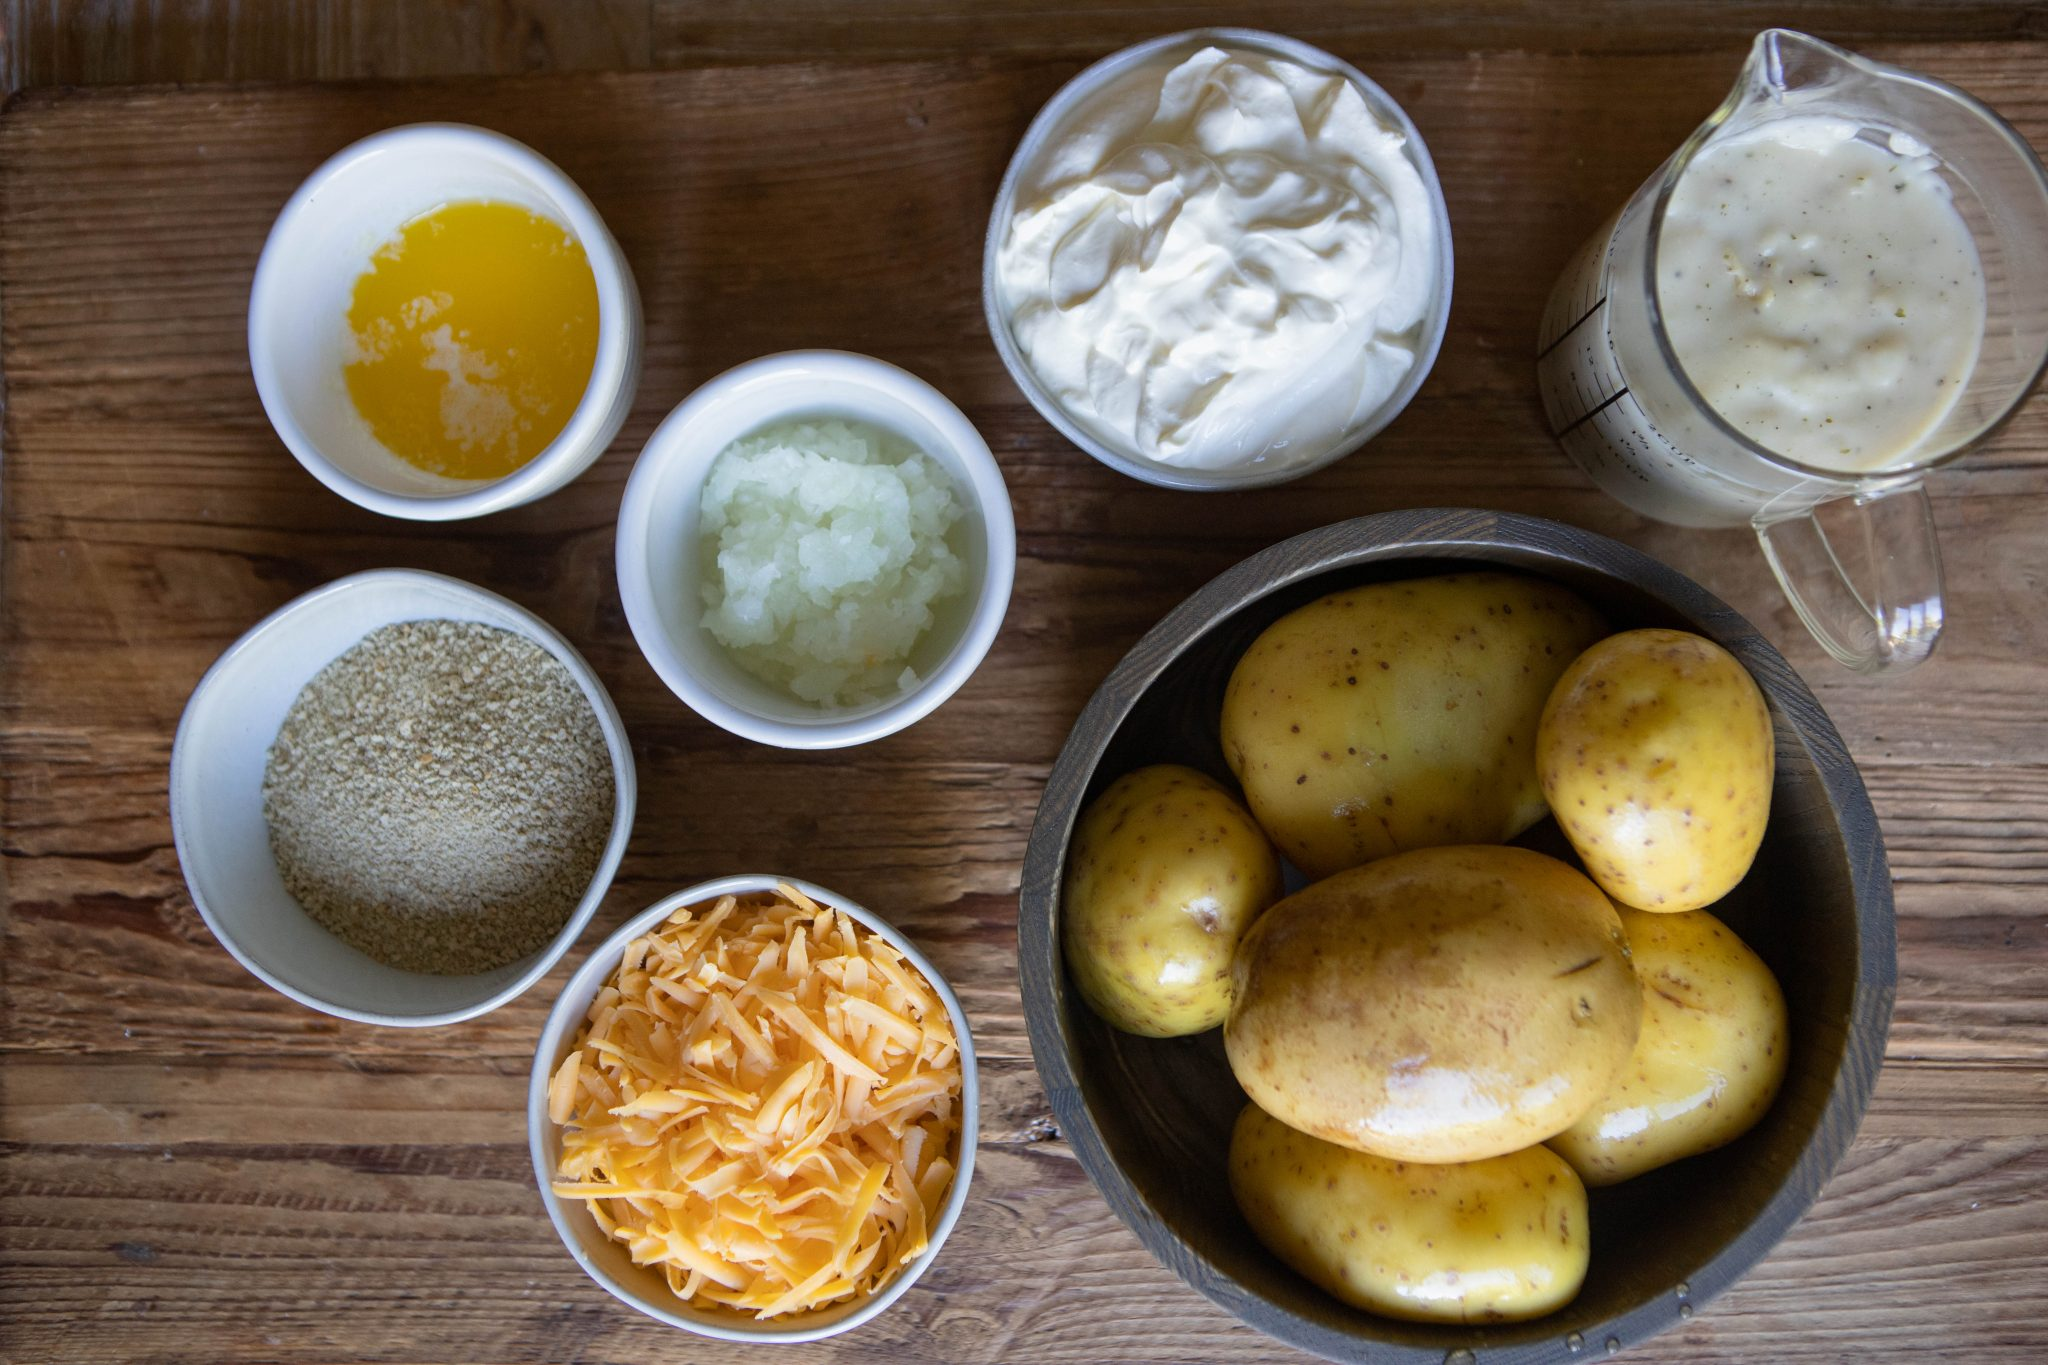 potatoes and other ingredients on a wooden board, for a casserole recipe